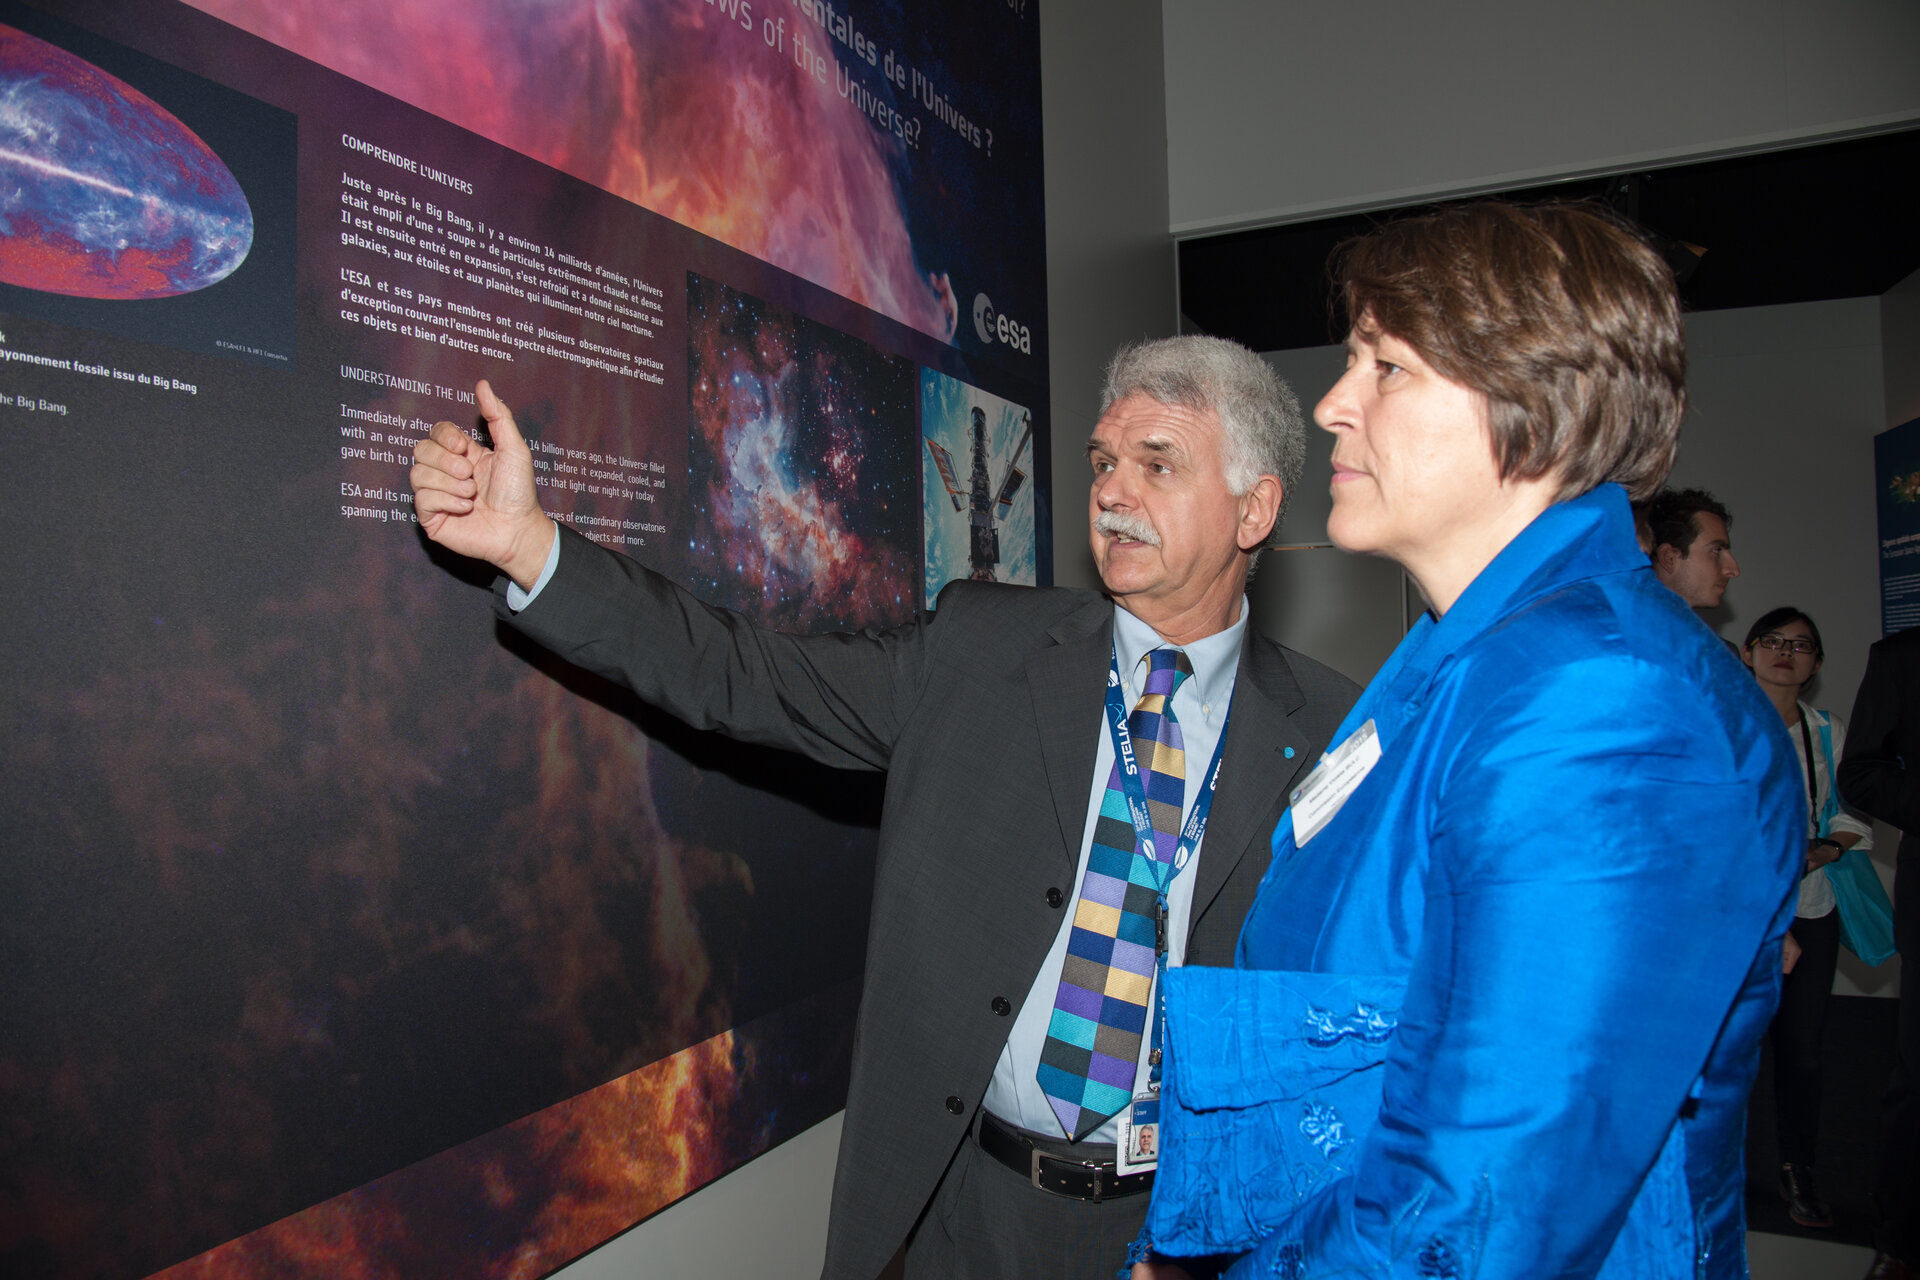 Franco Bonacina presents to Violeta Bulc the ESA pavilion